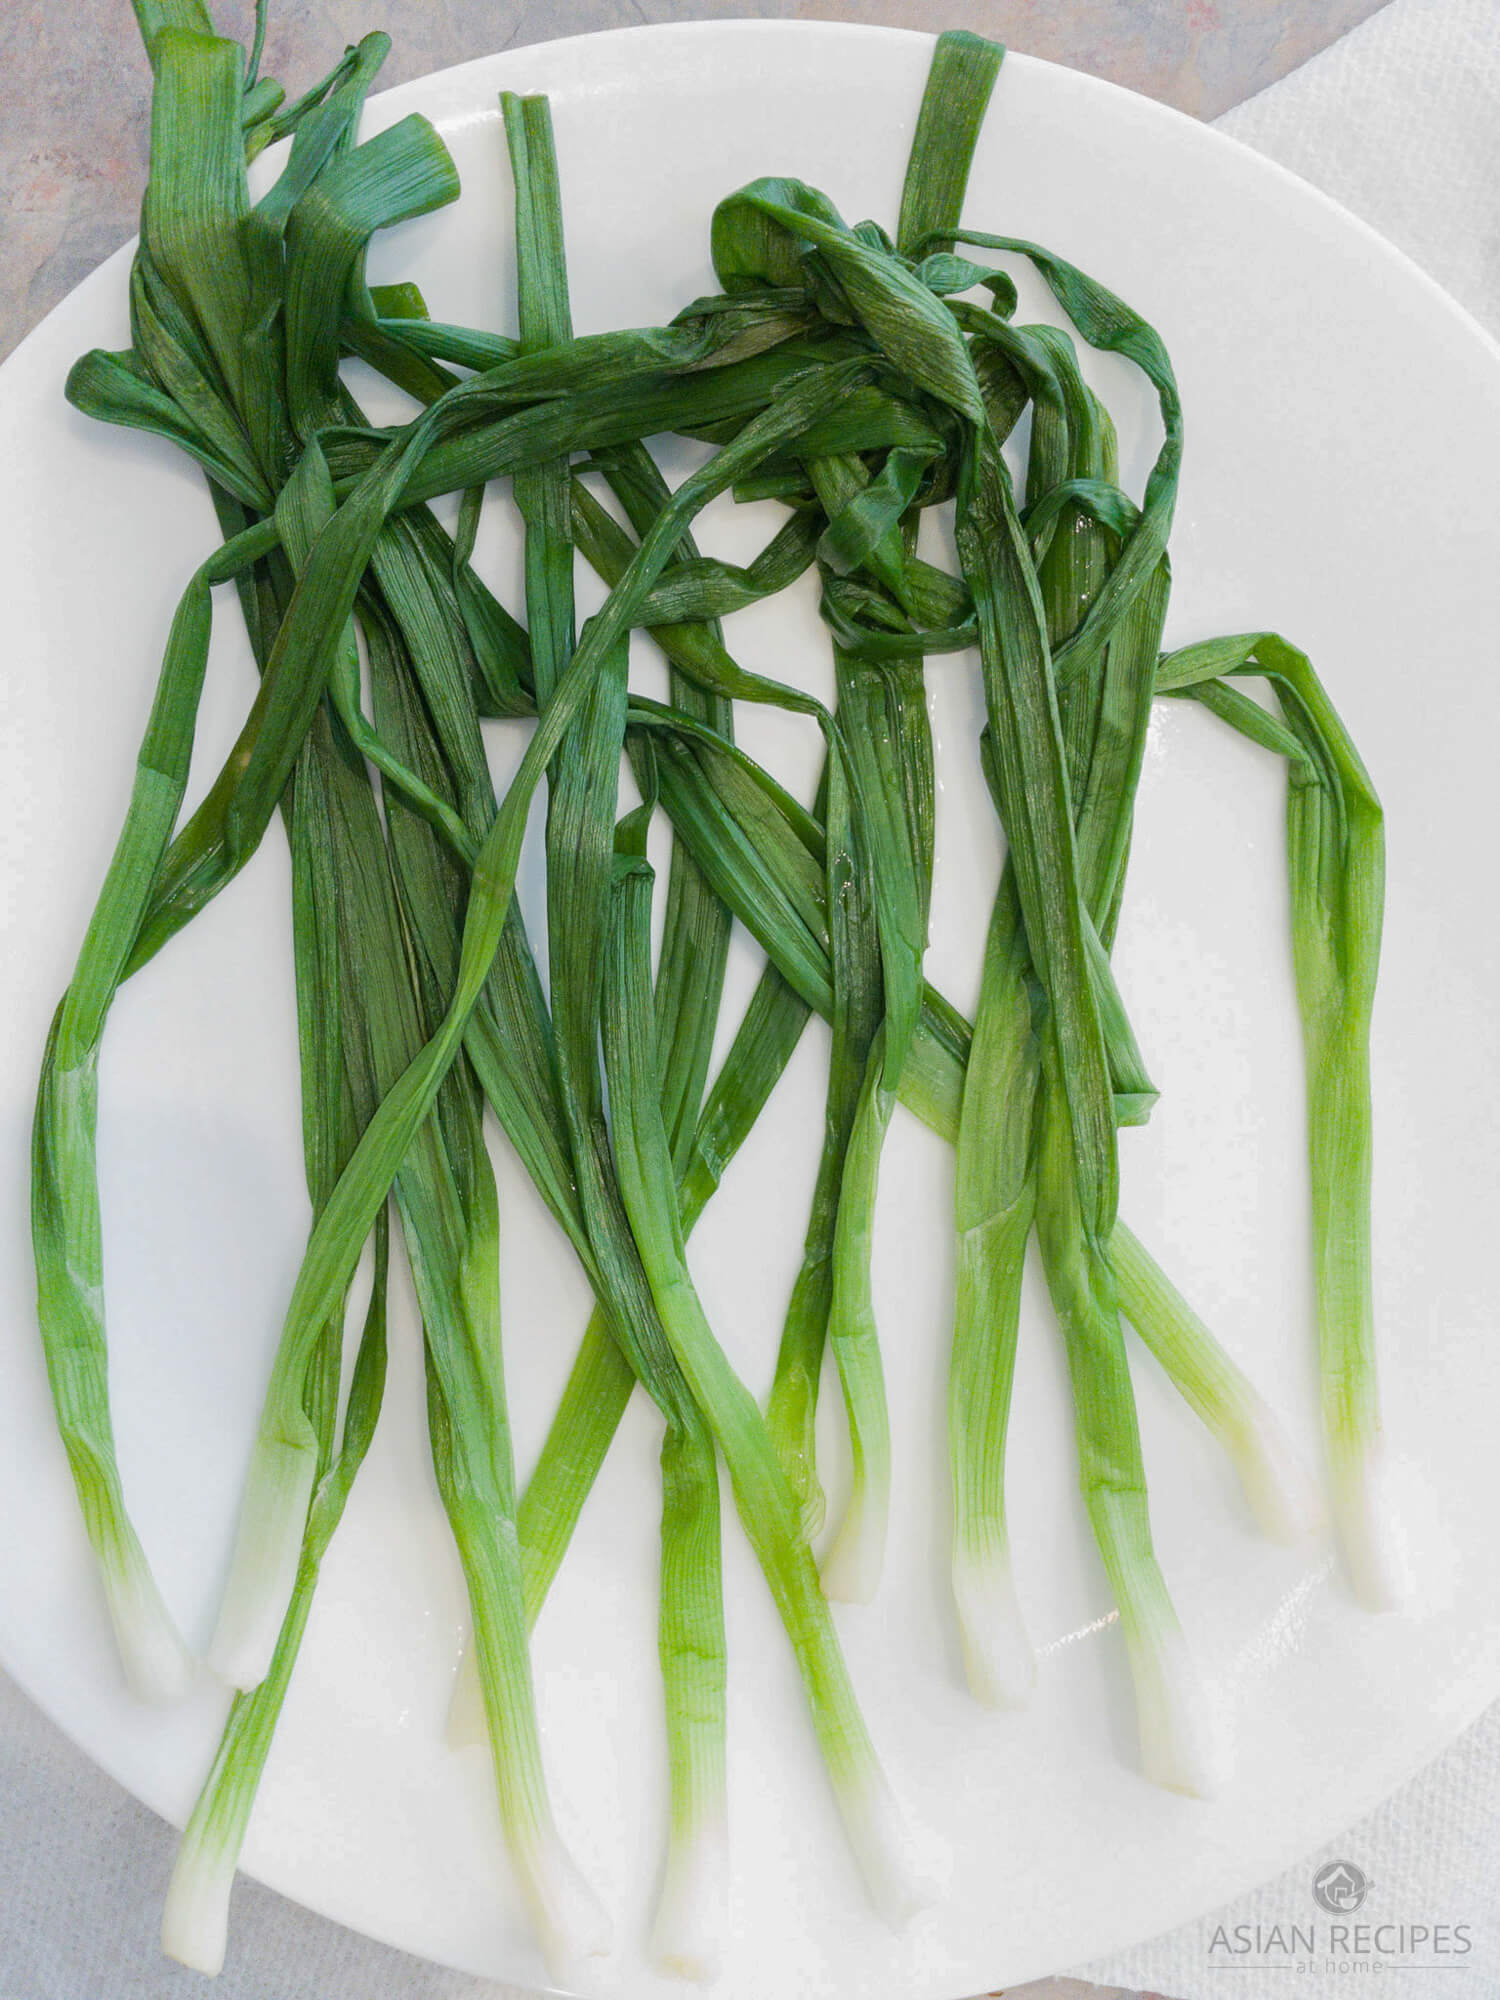 After the green onions are microwaved to make the Korean green onion side dish (pa namul) recipe